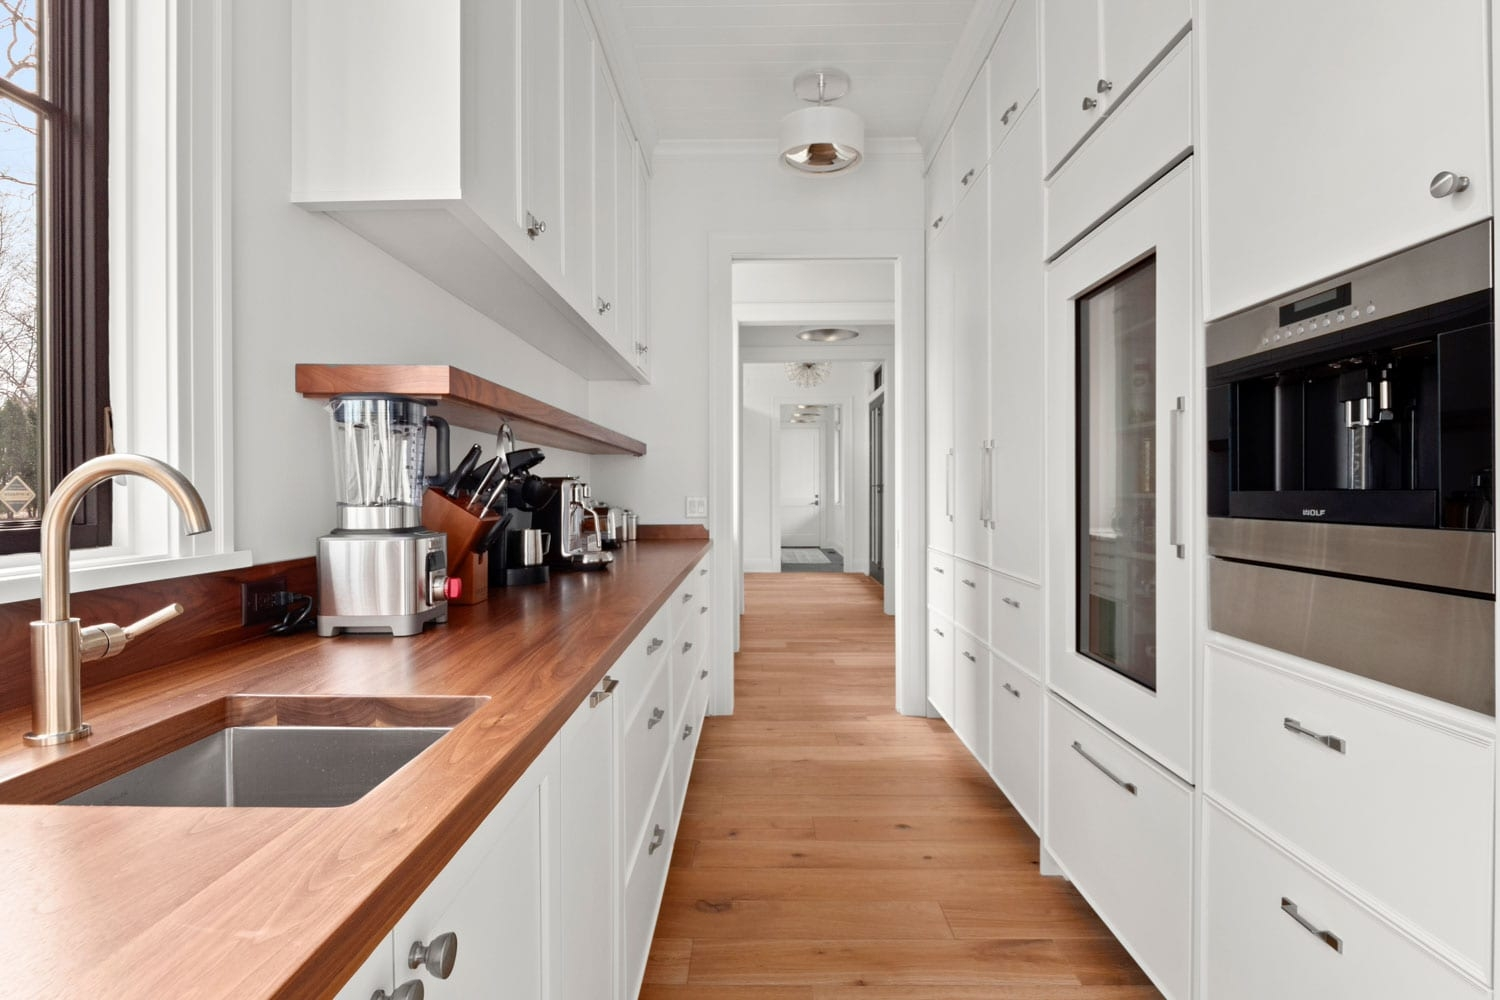 7 Images Brookwood Cabinetry Reviews And View - Alqu Blog